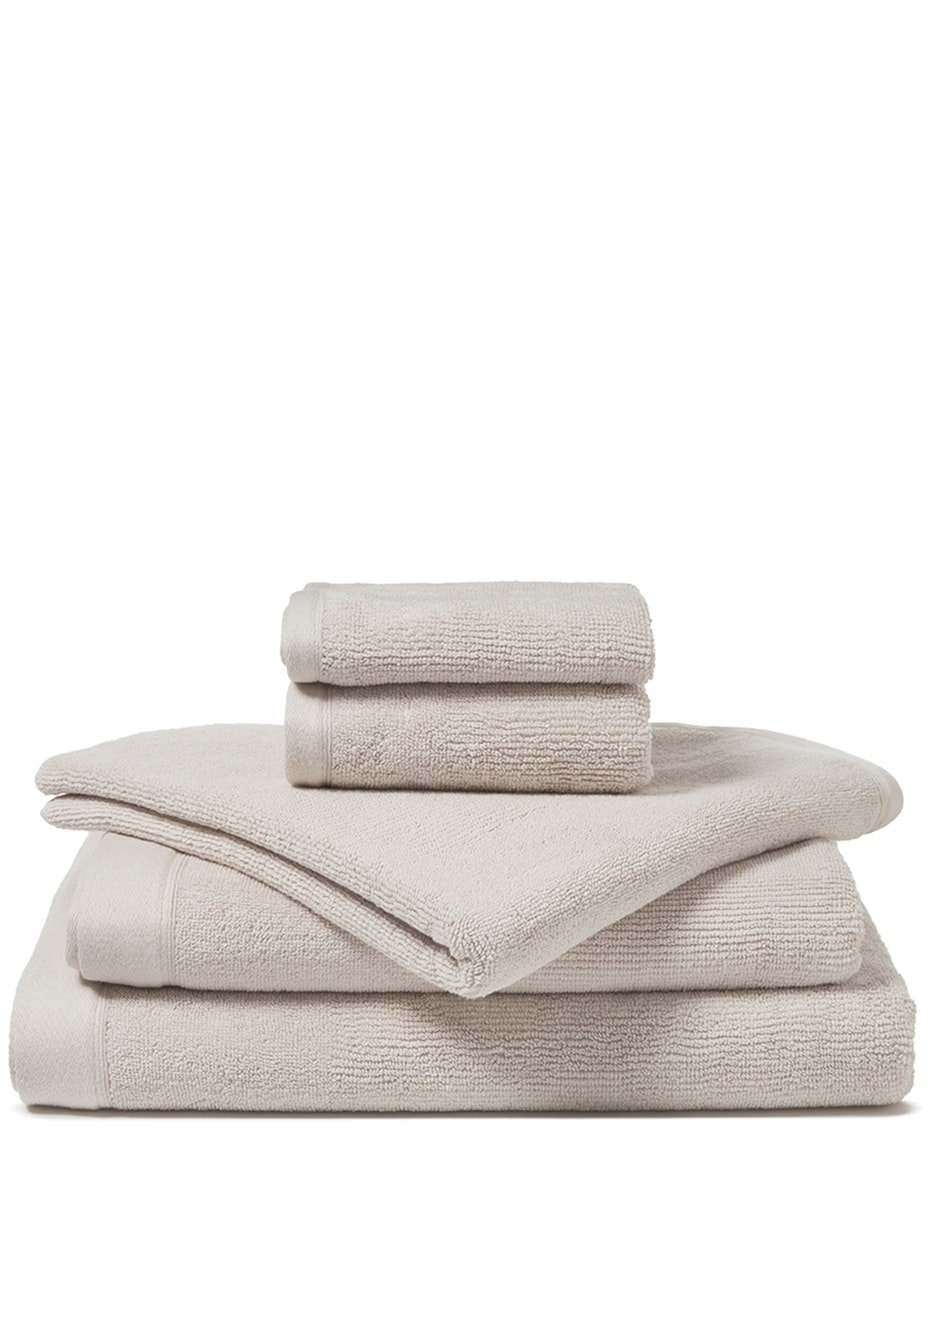 Canningvale - Corduroy Rib Bath Towel Turtledove